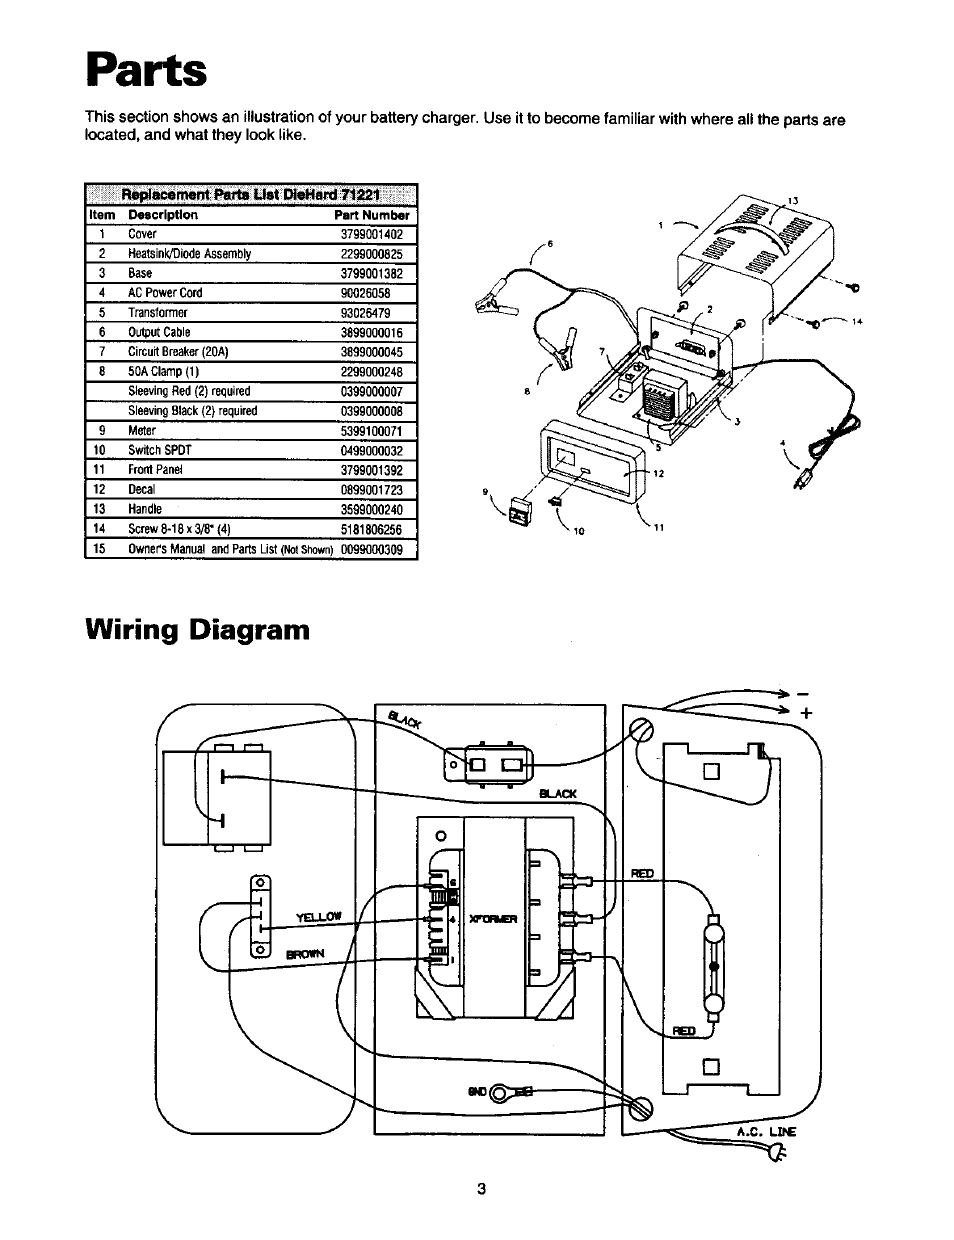 Troy 71221 Wiring Diagram